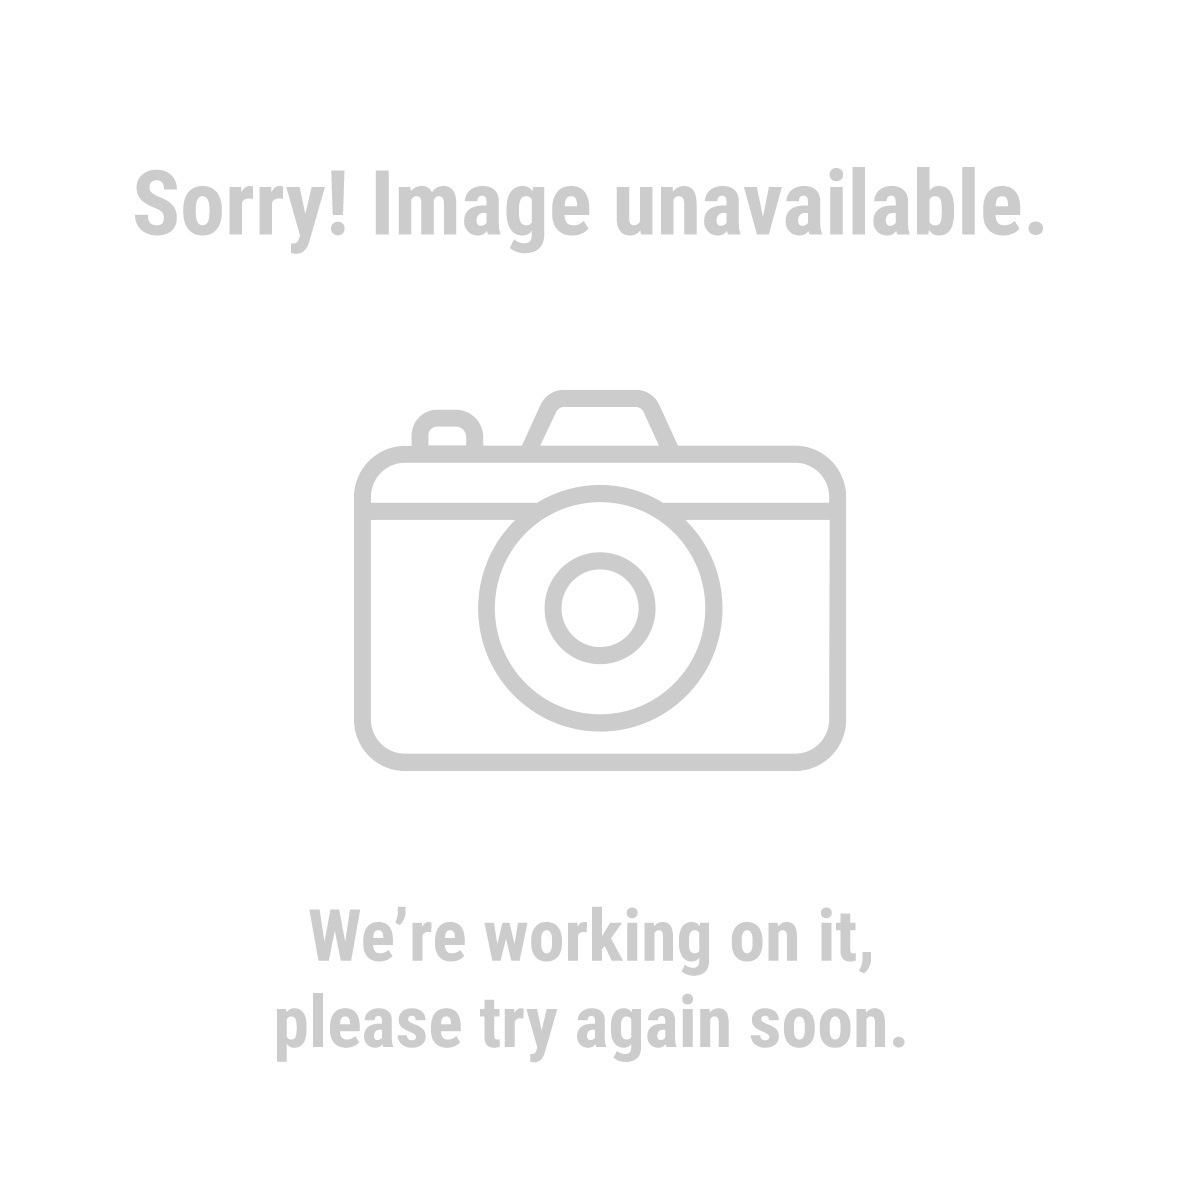 Cheap Garage Storage Shelves - Cheap Garage Storage Shelves - The BangShift.com Forums